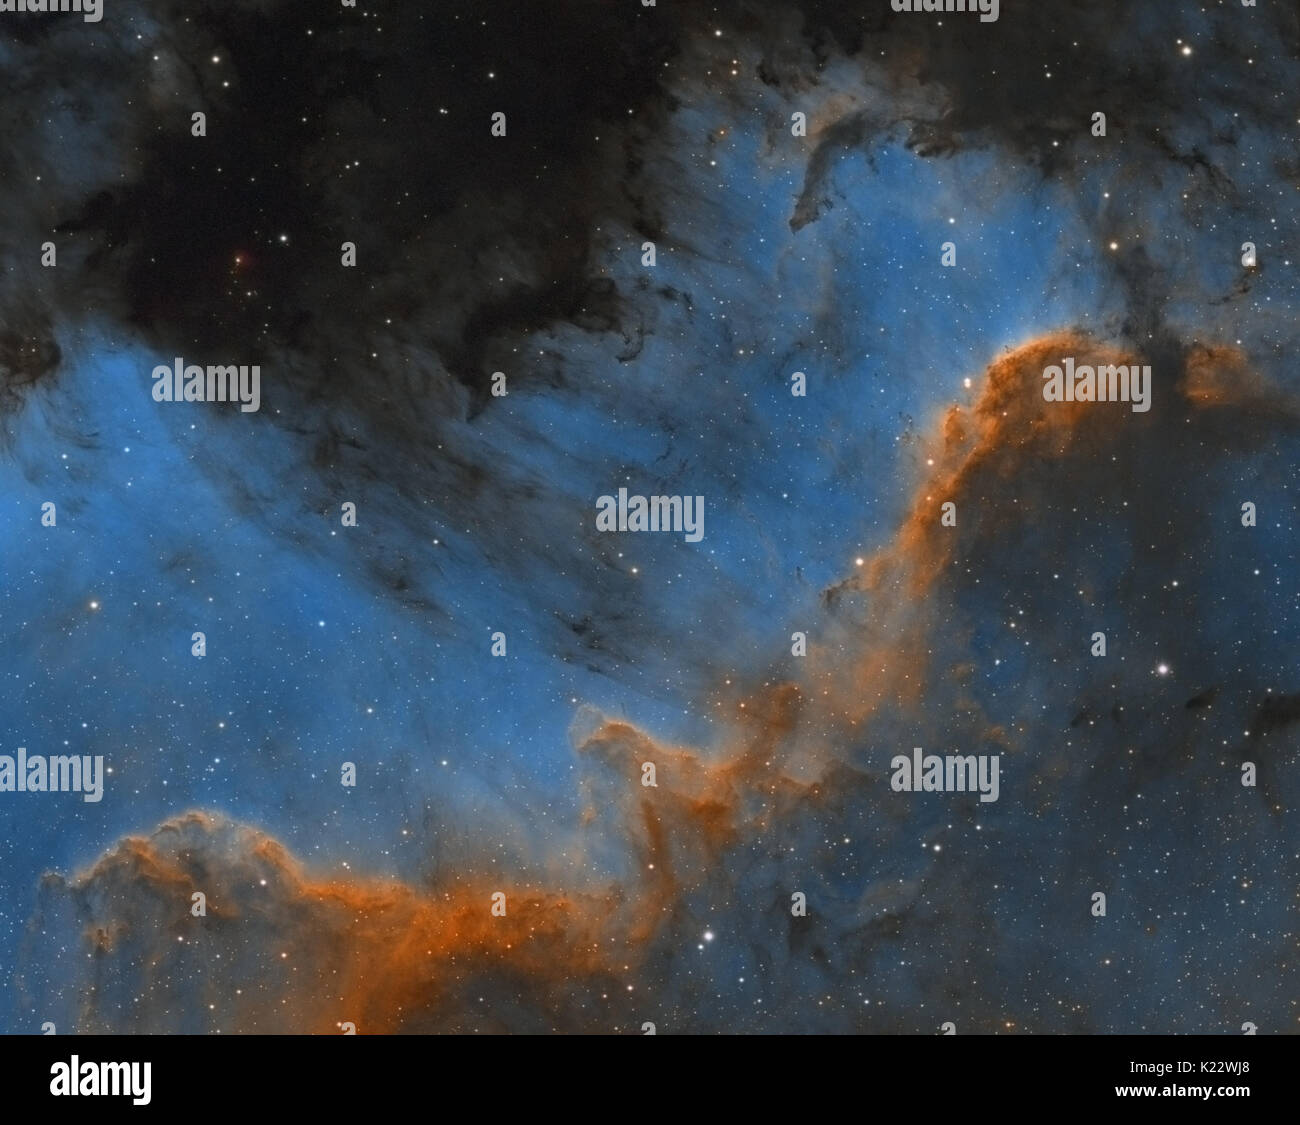 Cygnus Wall region of North America nebula in the constellation of Cygnus (The Swan) - Hubble Palette - Stock Image